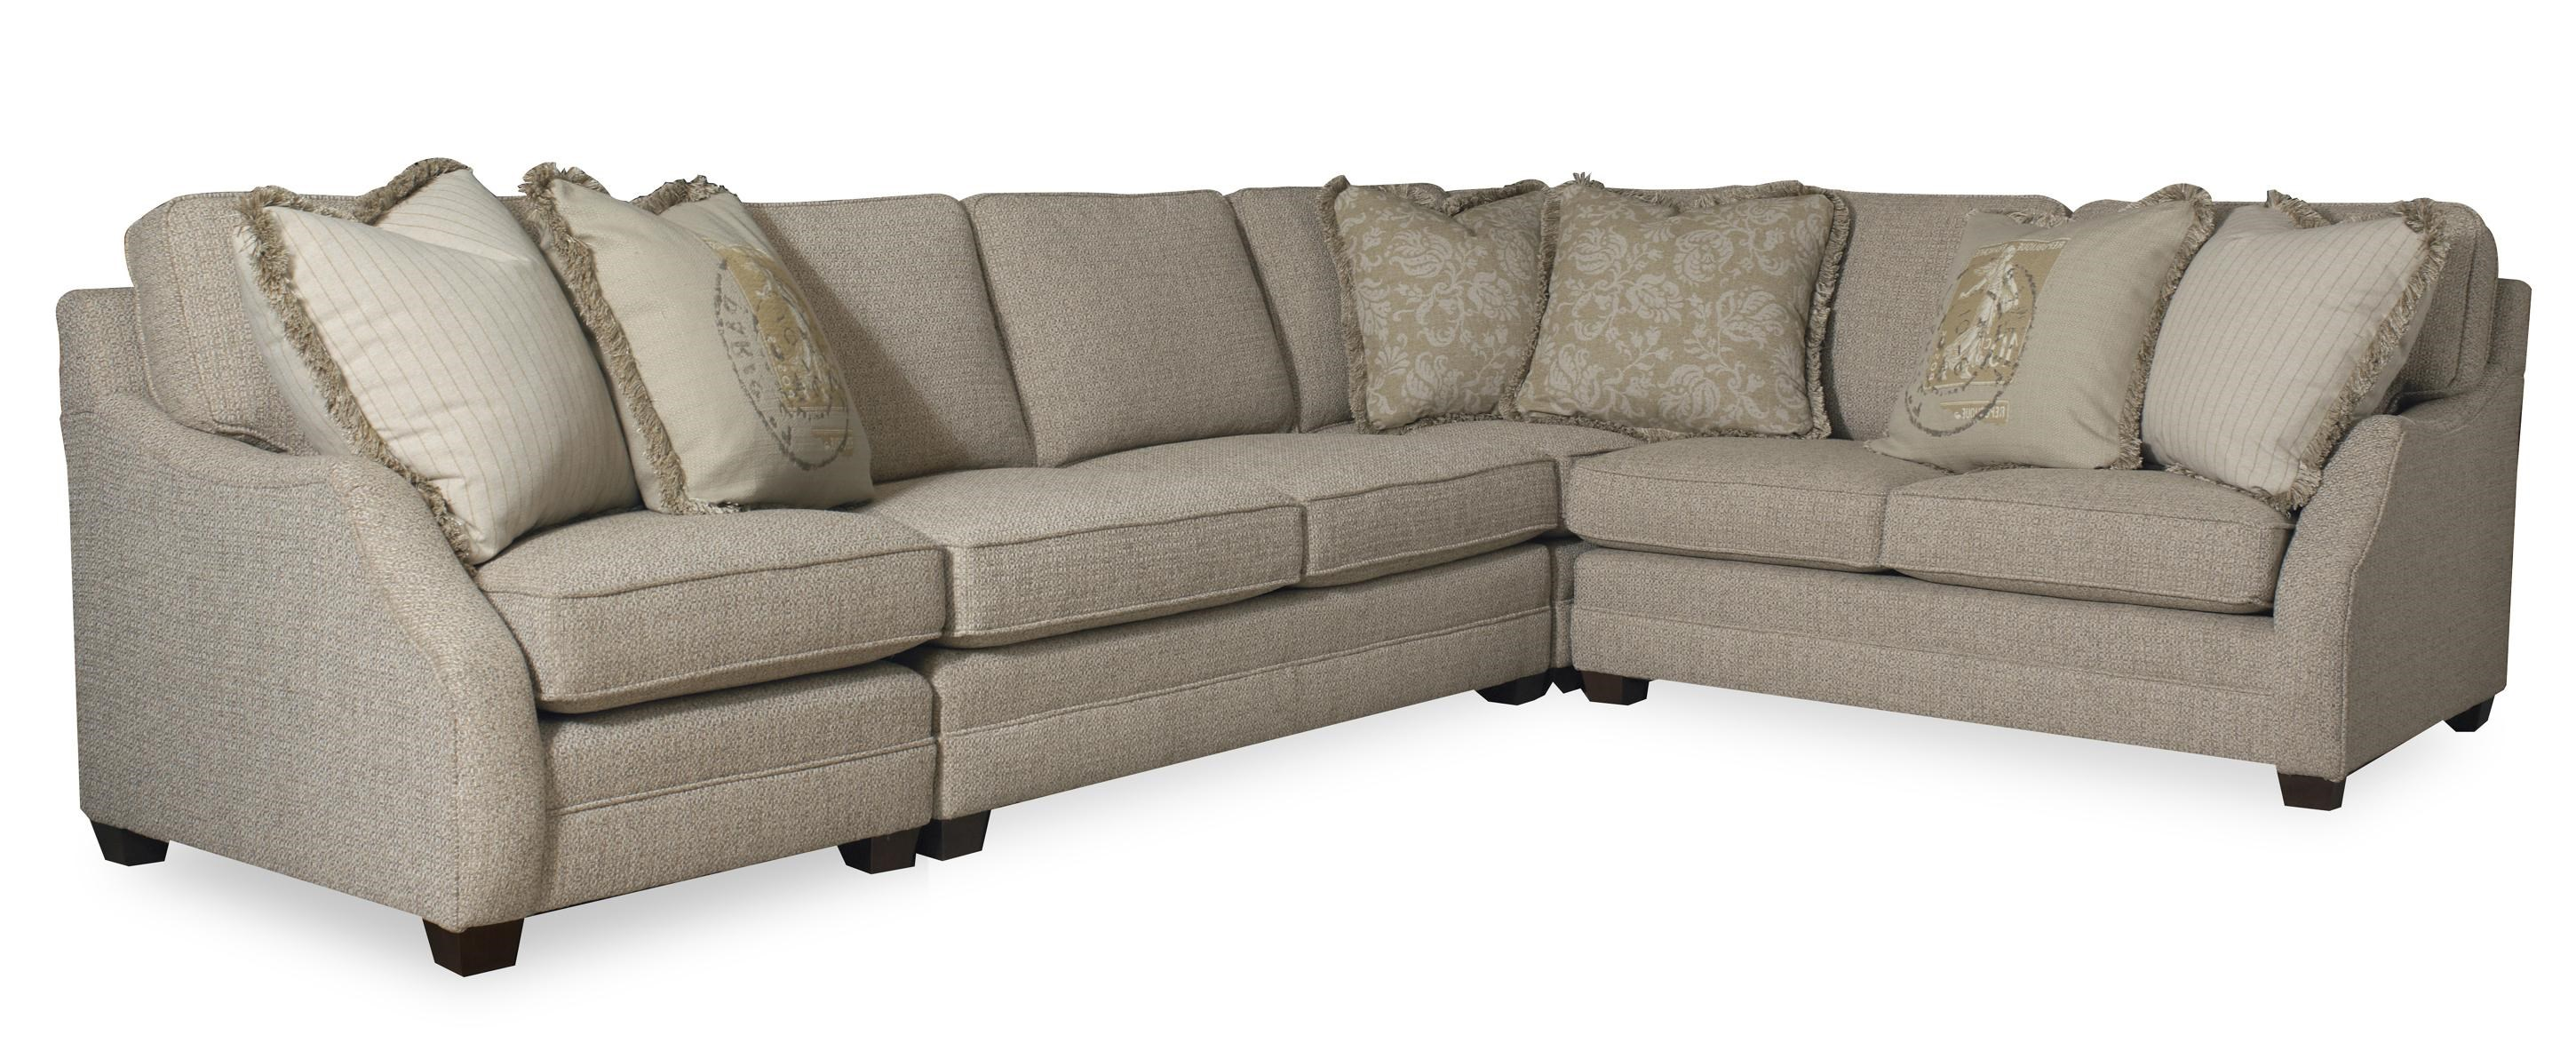 Sam Moore Rita Transitional Three Piece Sectional Sofa with RAF Sofa Return - Belfort Furniture - Sofa Sectional  sc 1 st  Belfort Furniture : sam moore sectional - Sectionals, Sofas & Couches